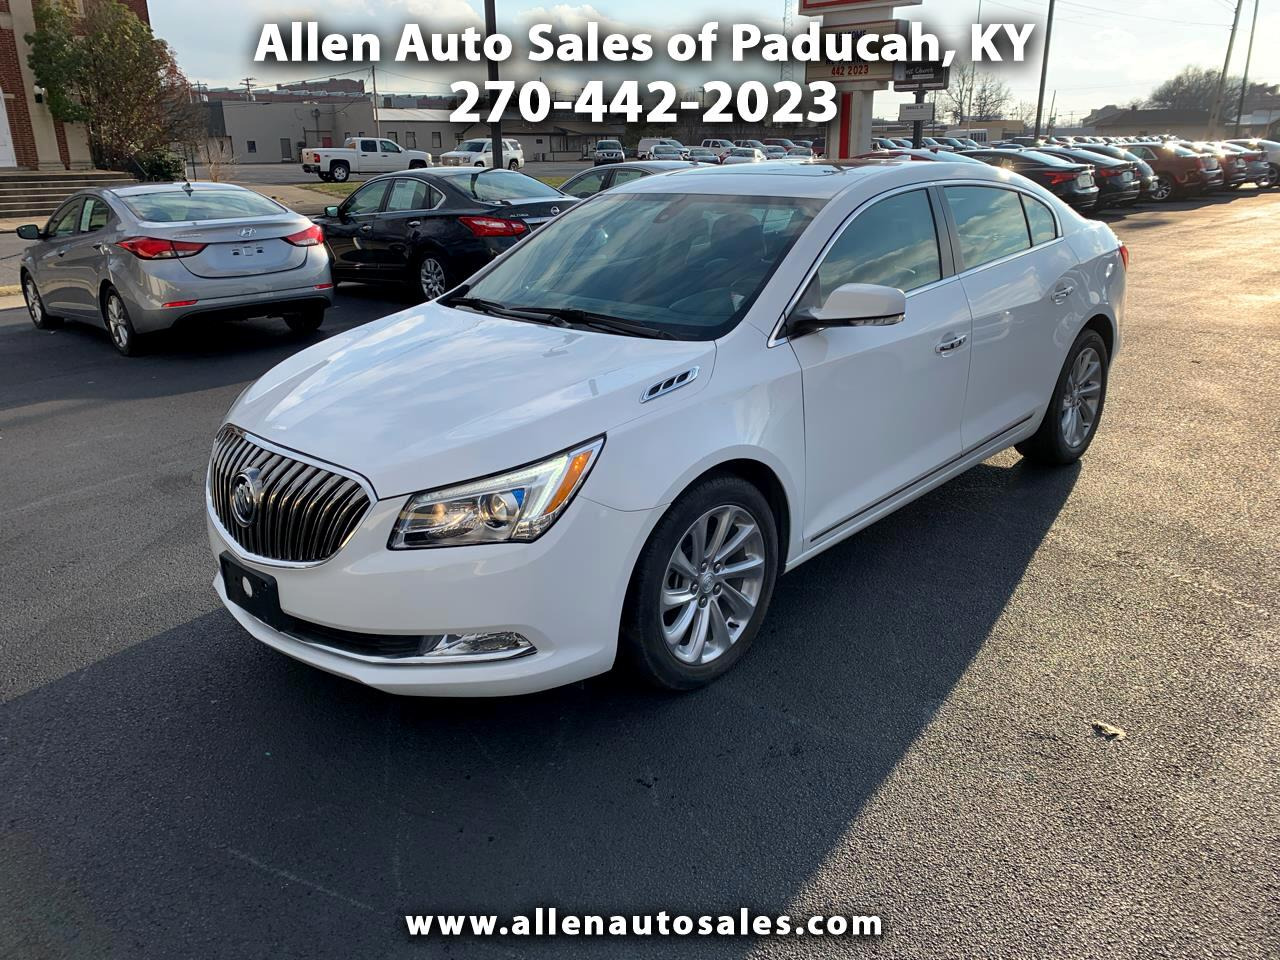 2016 Buick LaCrosse 4dr Sdn Leather FWD